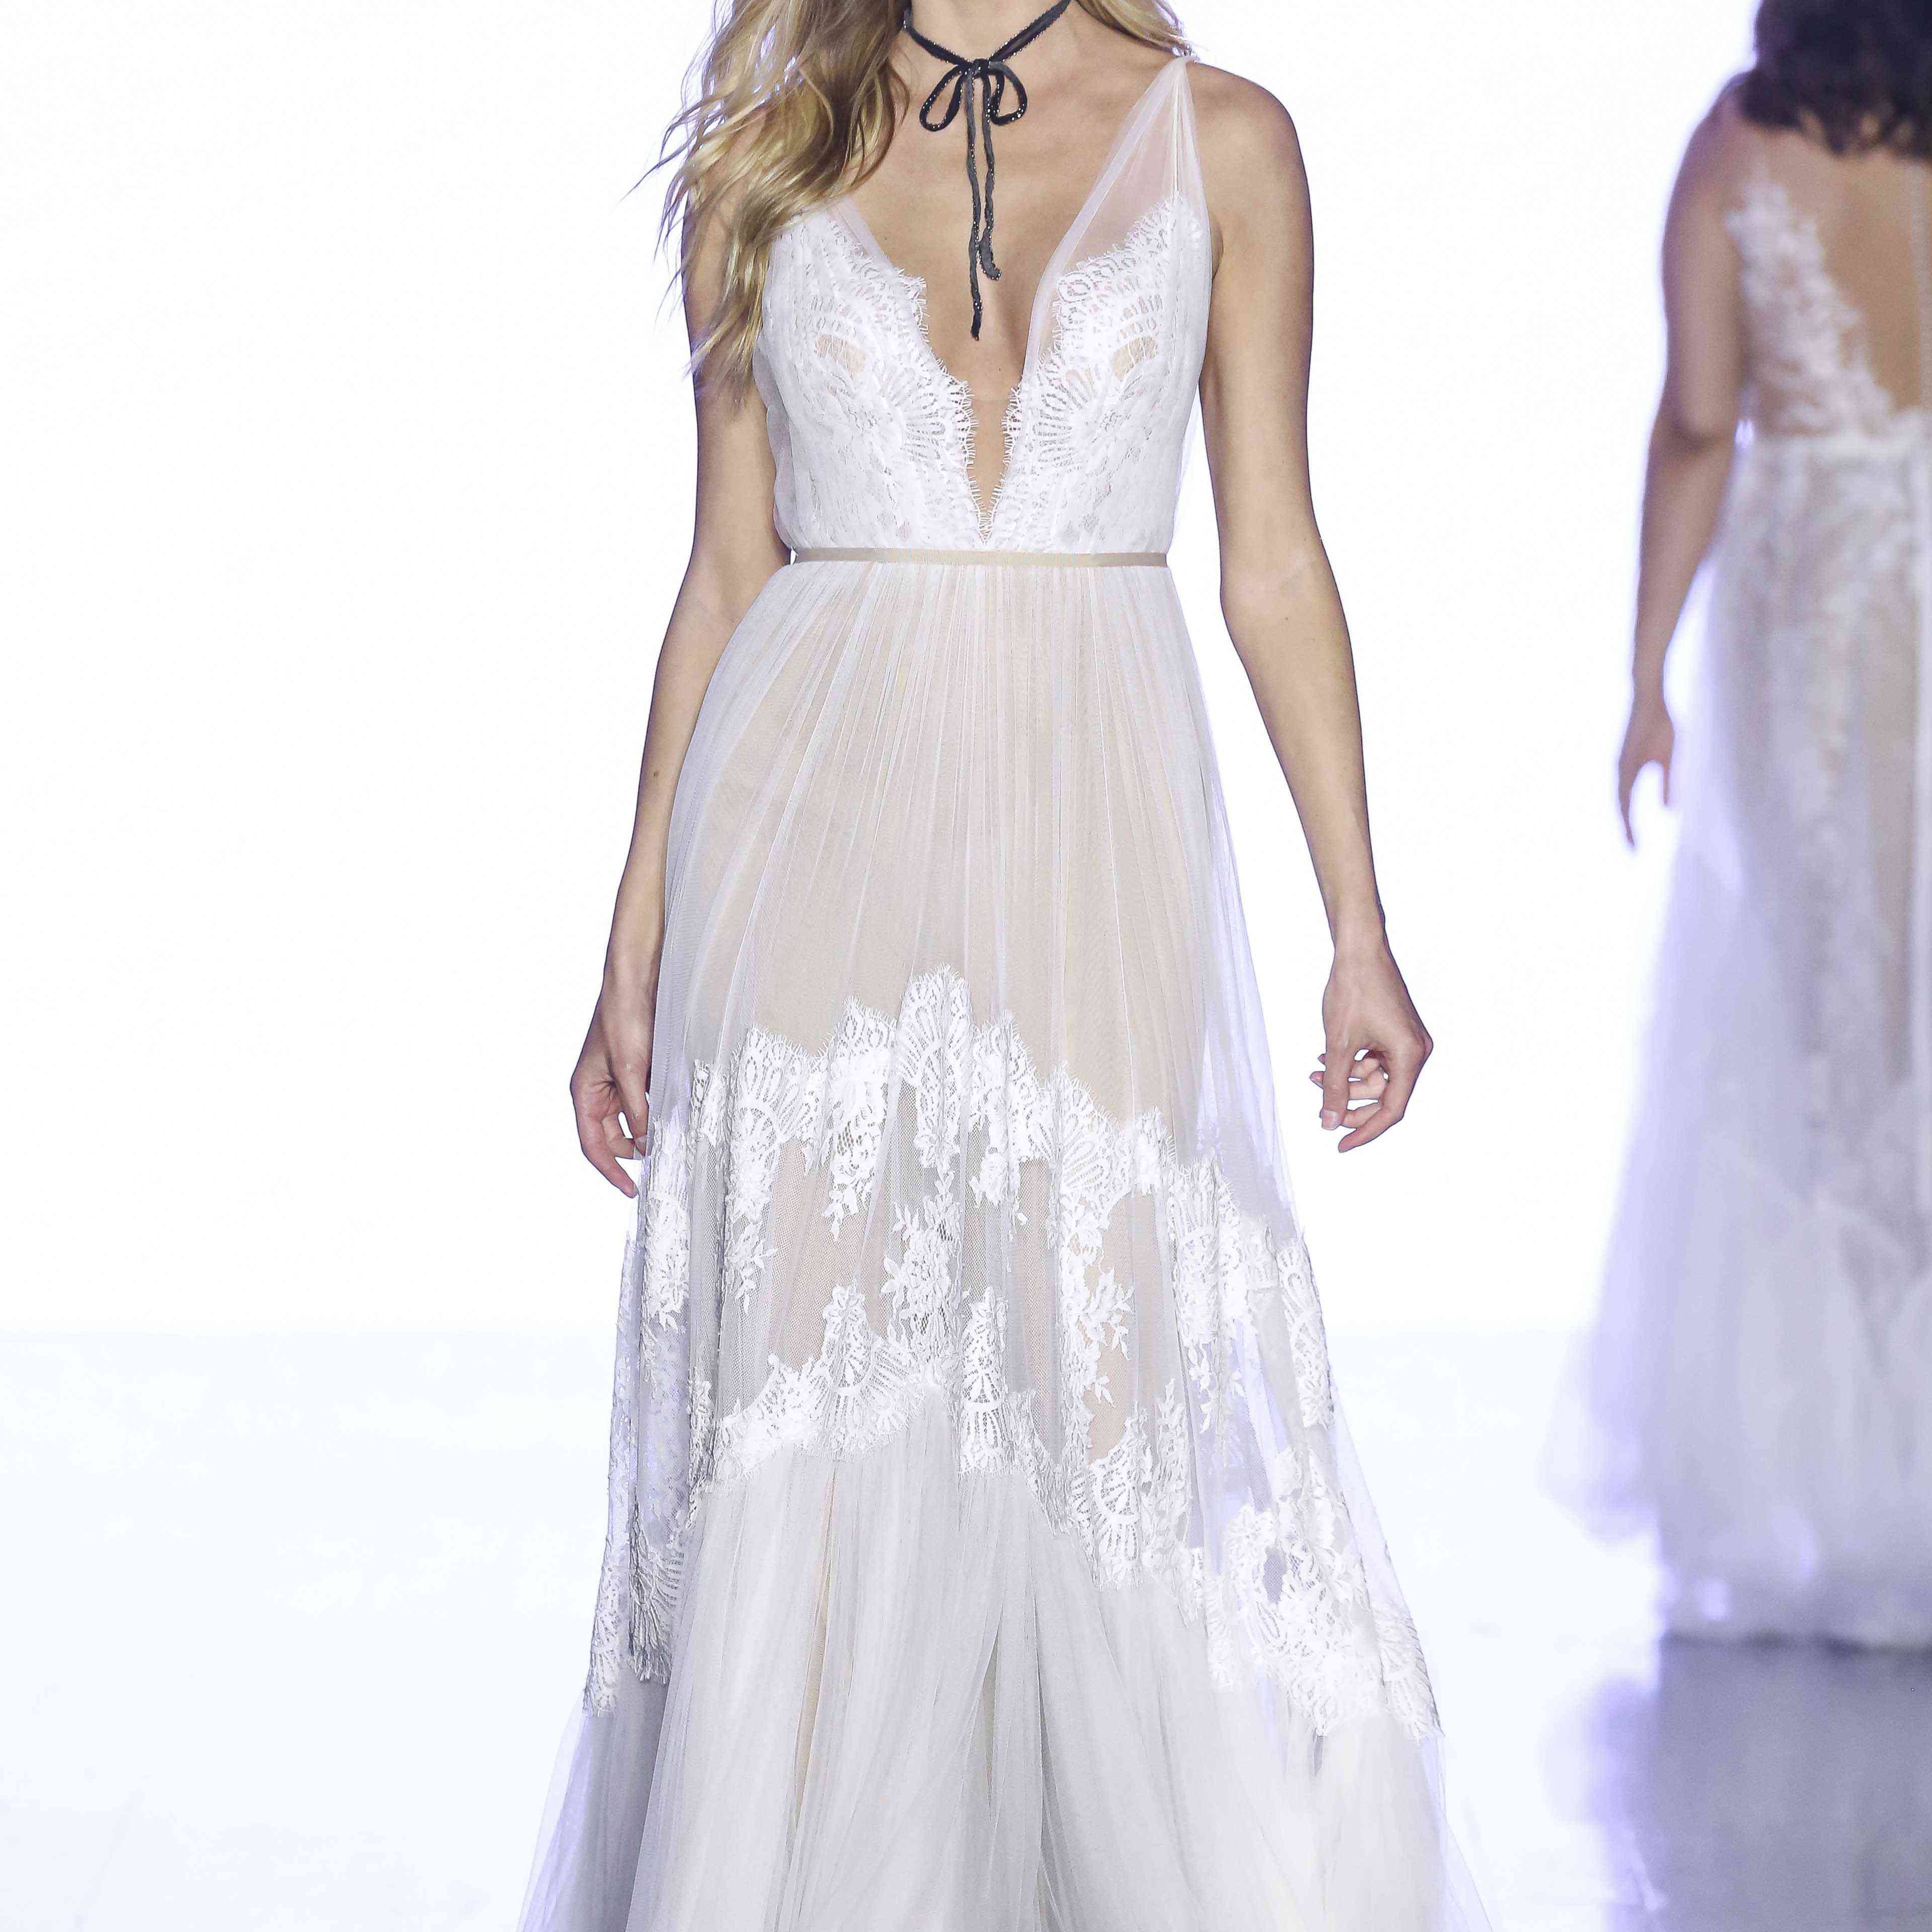 Model in V-neck gown with lace bodice and tulle and lace skirt